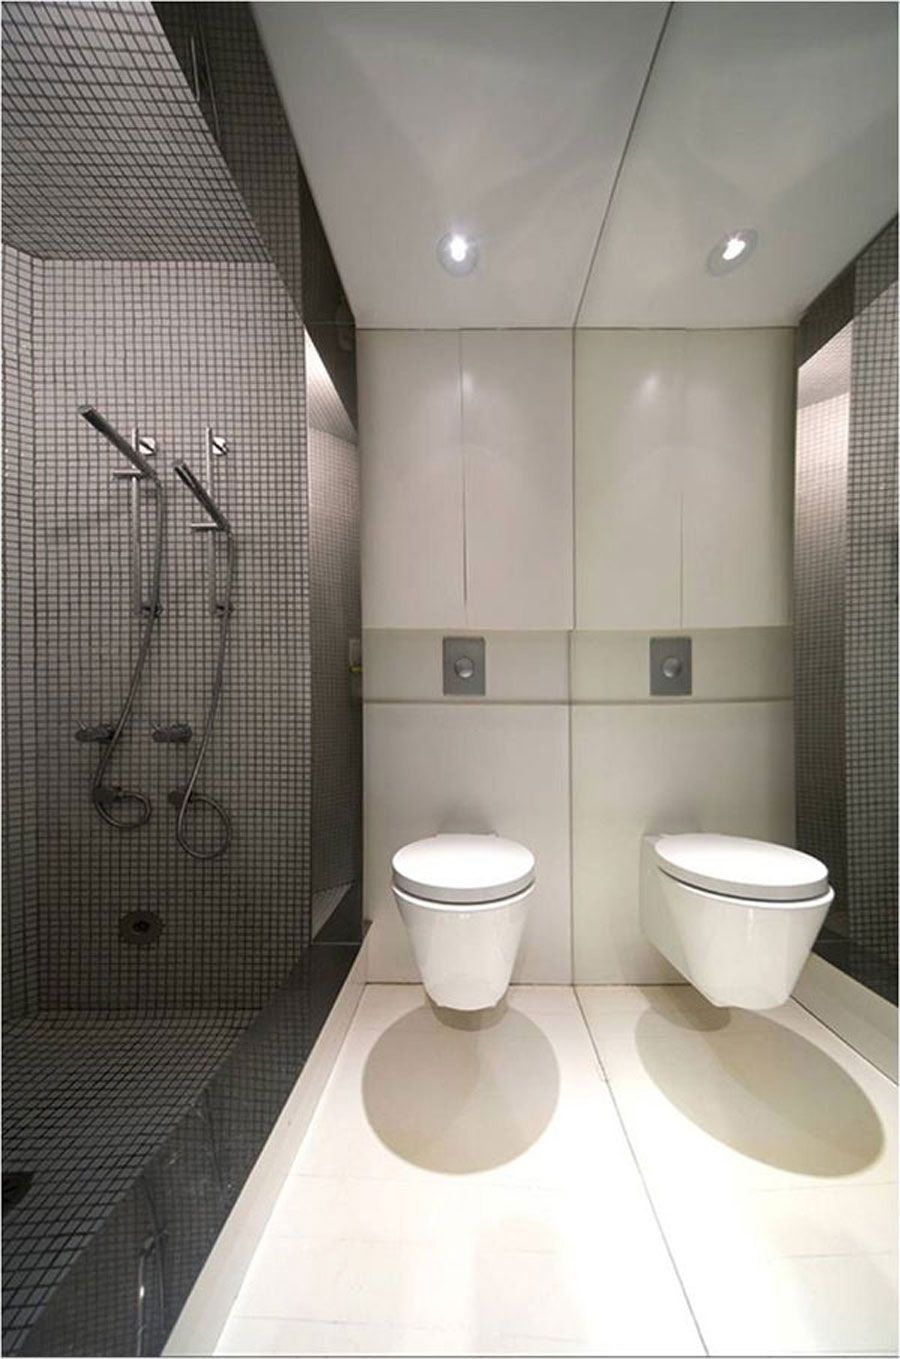 Bathroom Stal Minimalist reflection - the throwing backa body or surface of light, heat